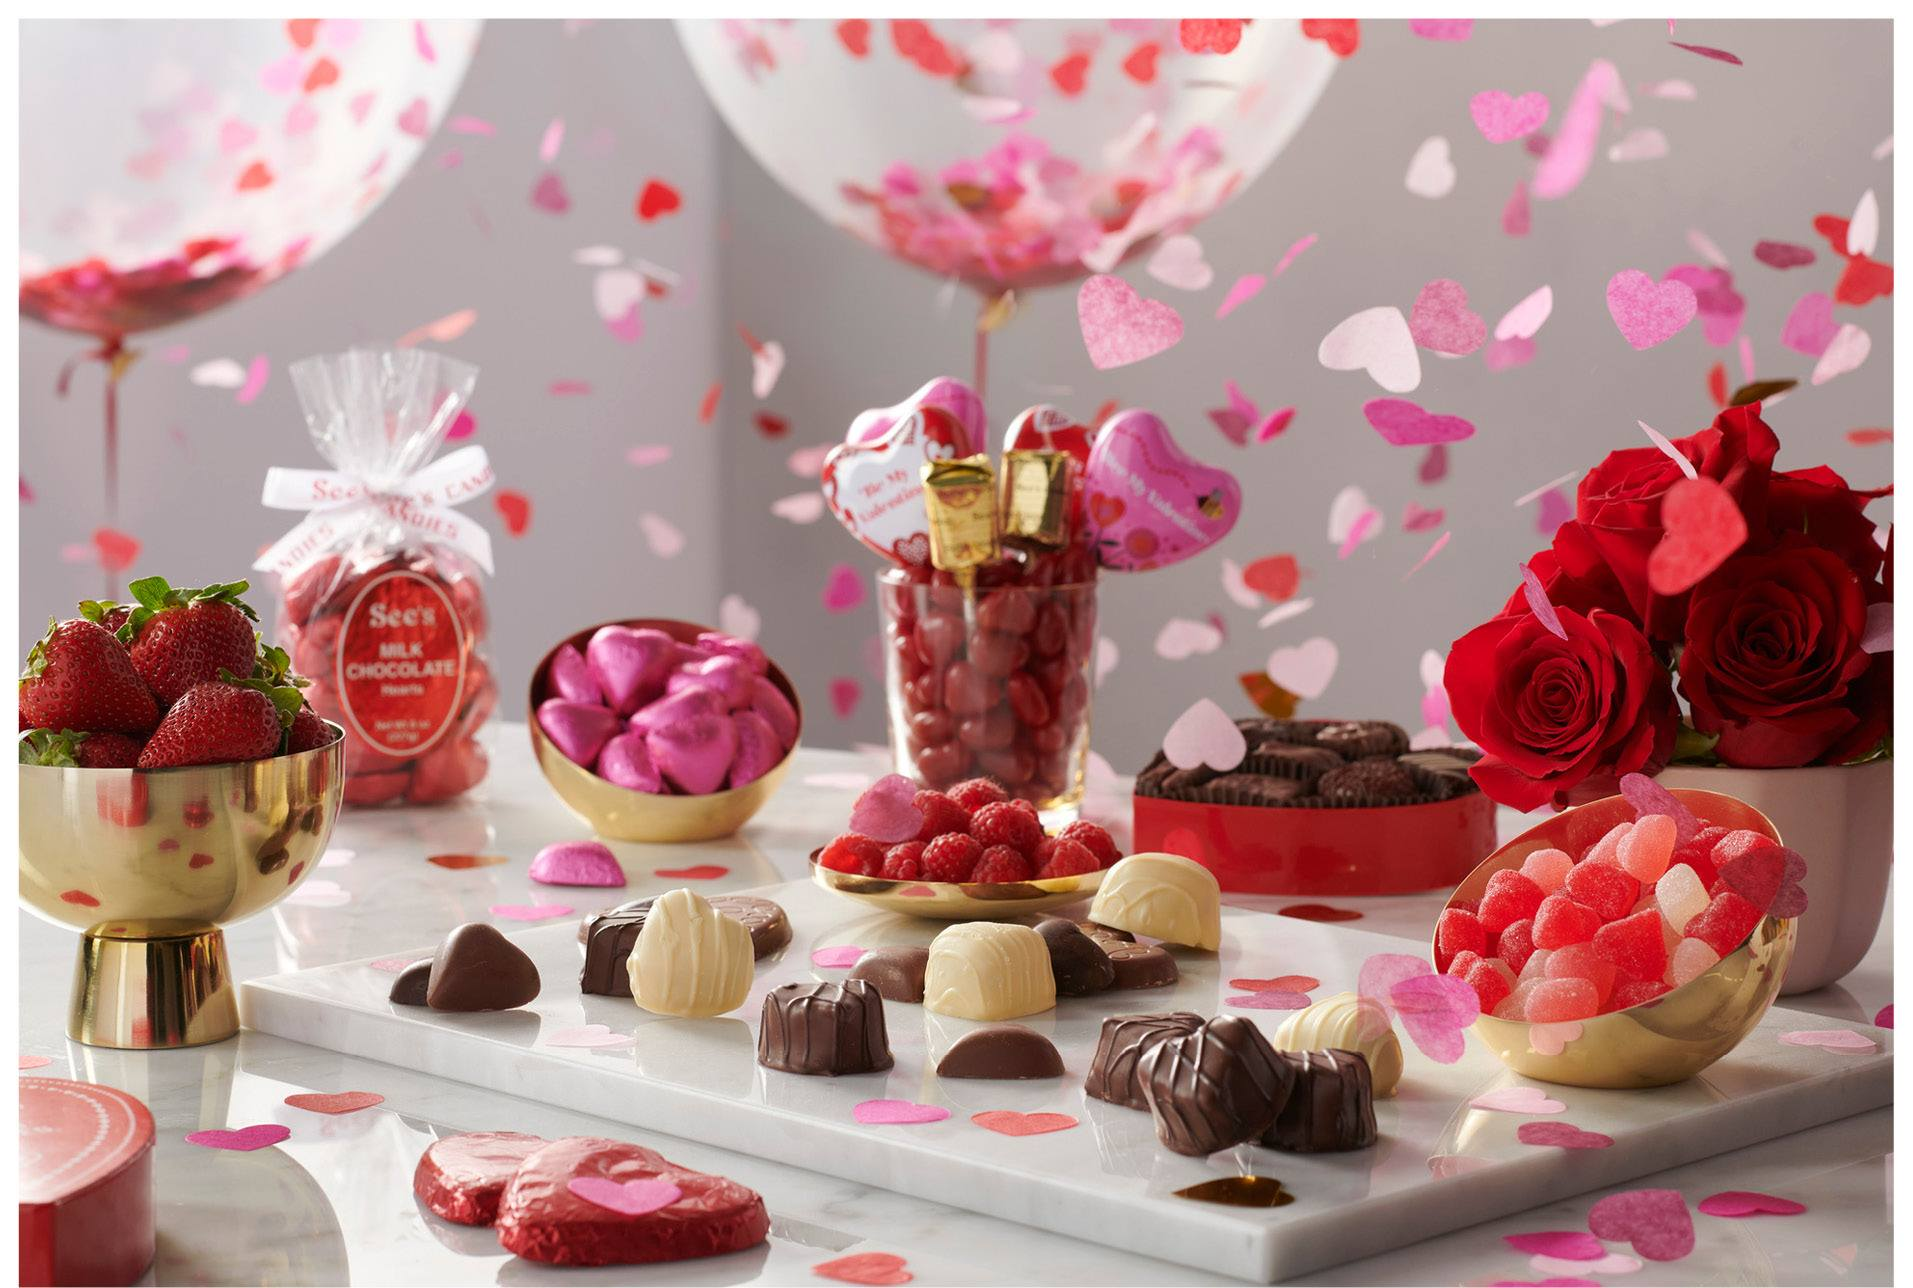 Valentine's Day Specials at See's Candies